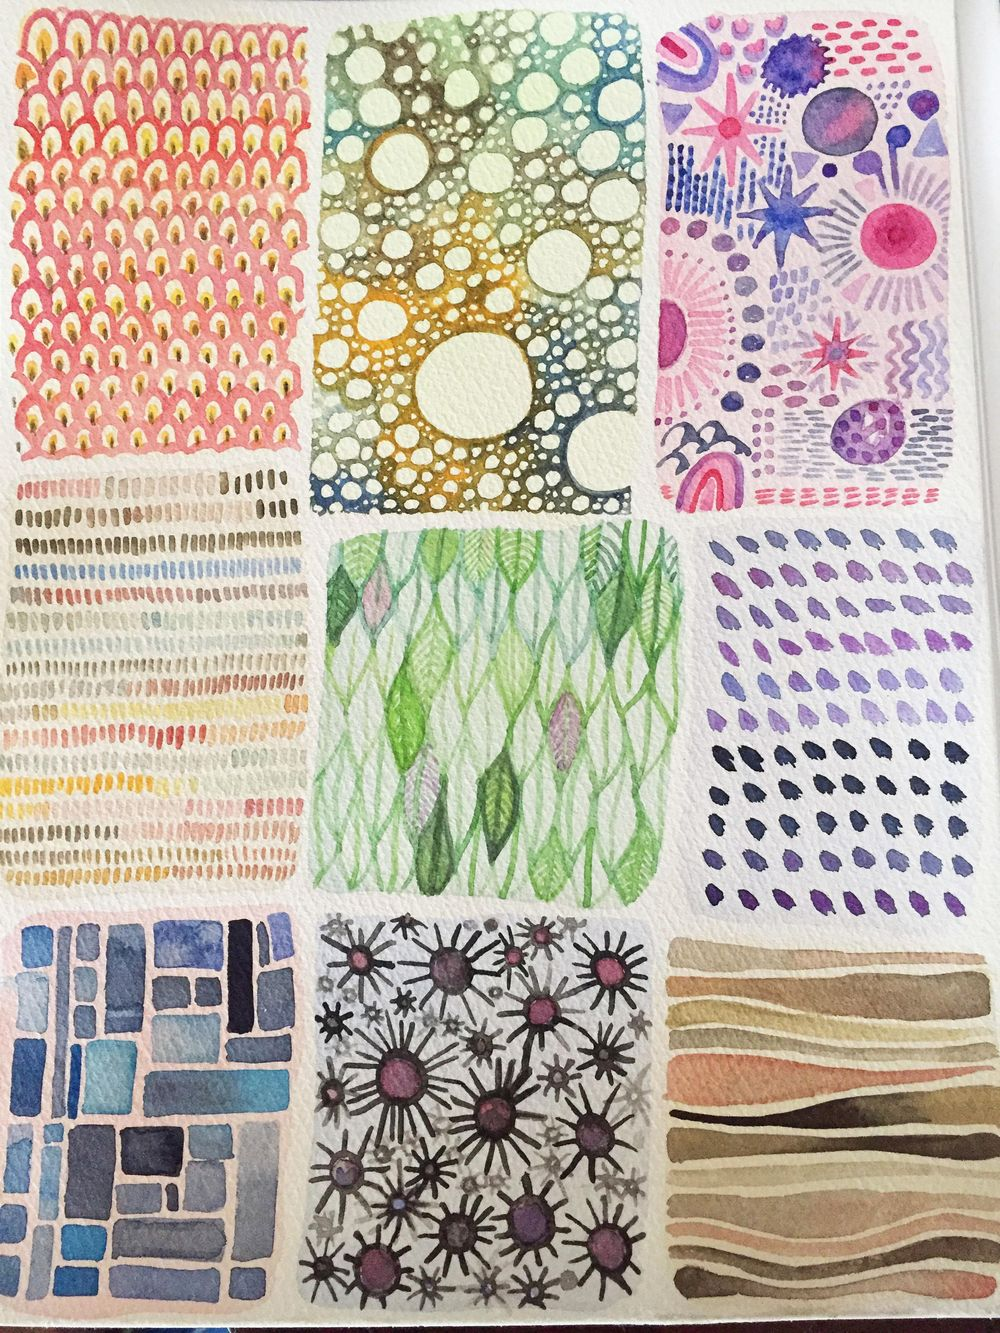 Watercolor patterns - image 1 - student project